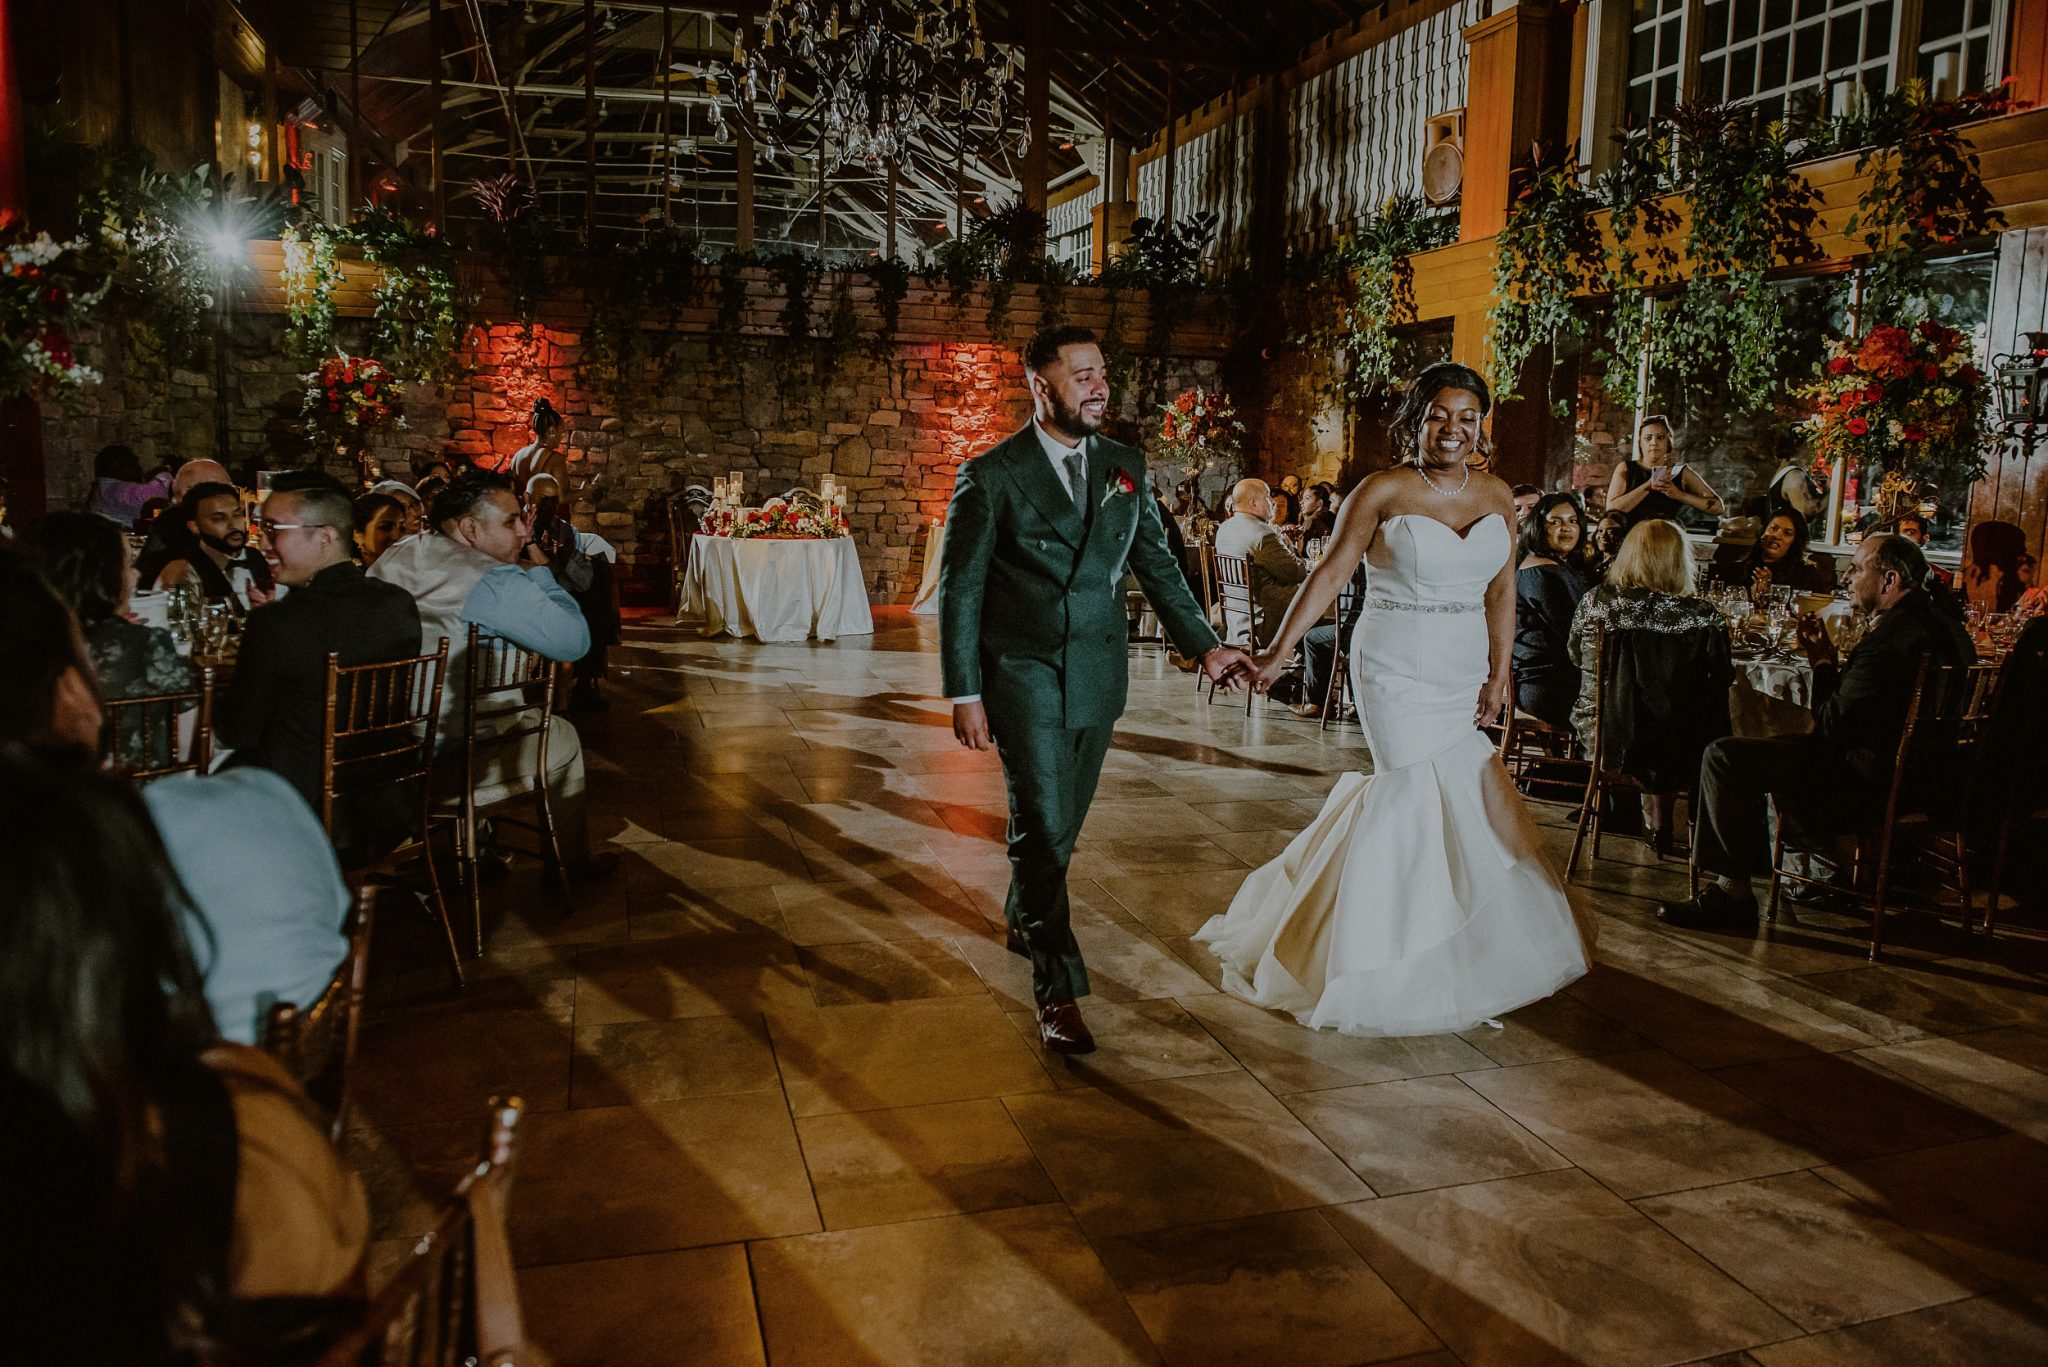 bride and groom at their fox hollow wedding surrounded by guests